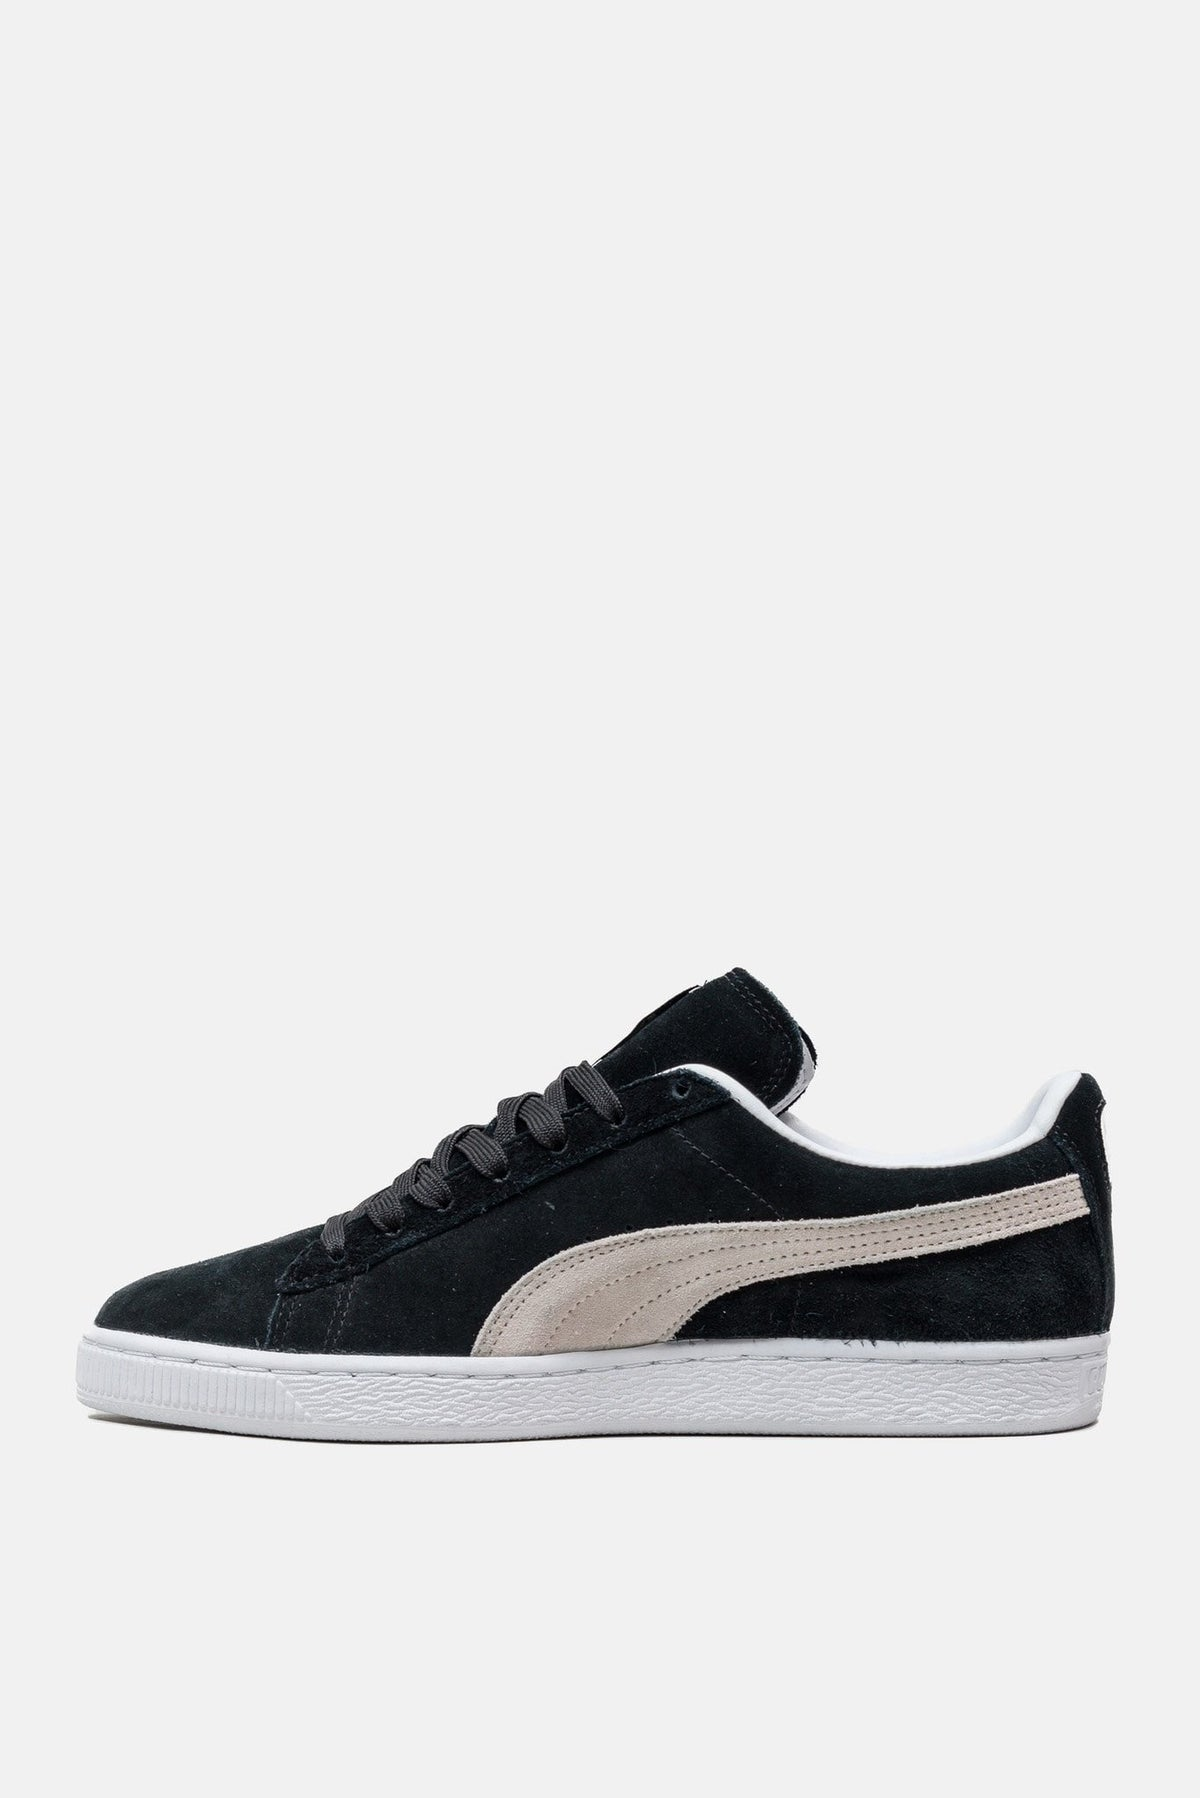 Puma Suede Classic Shoes available from Priory e6ffdbf9d